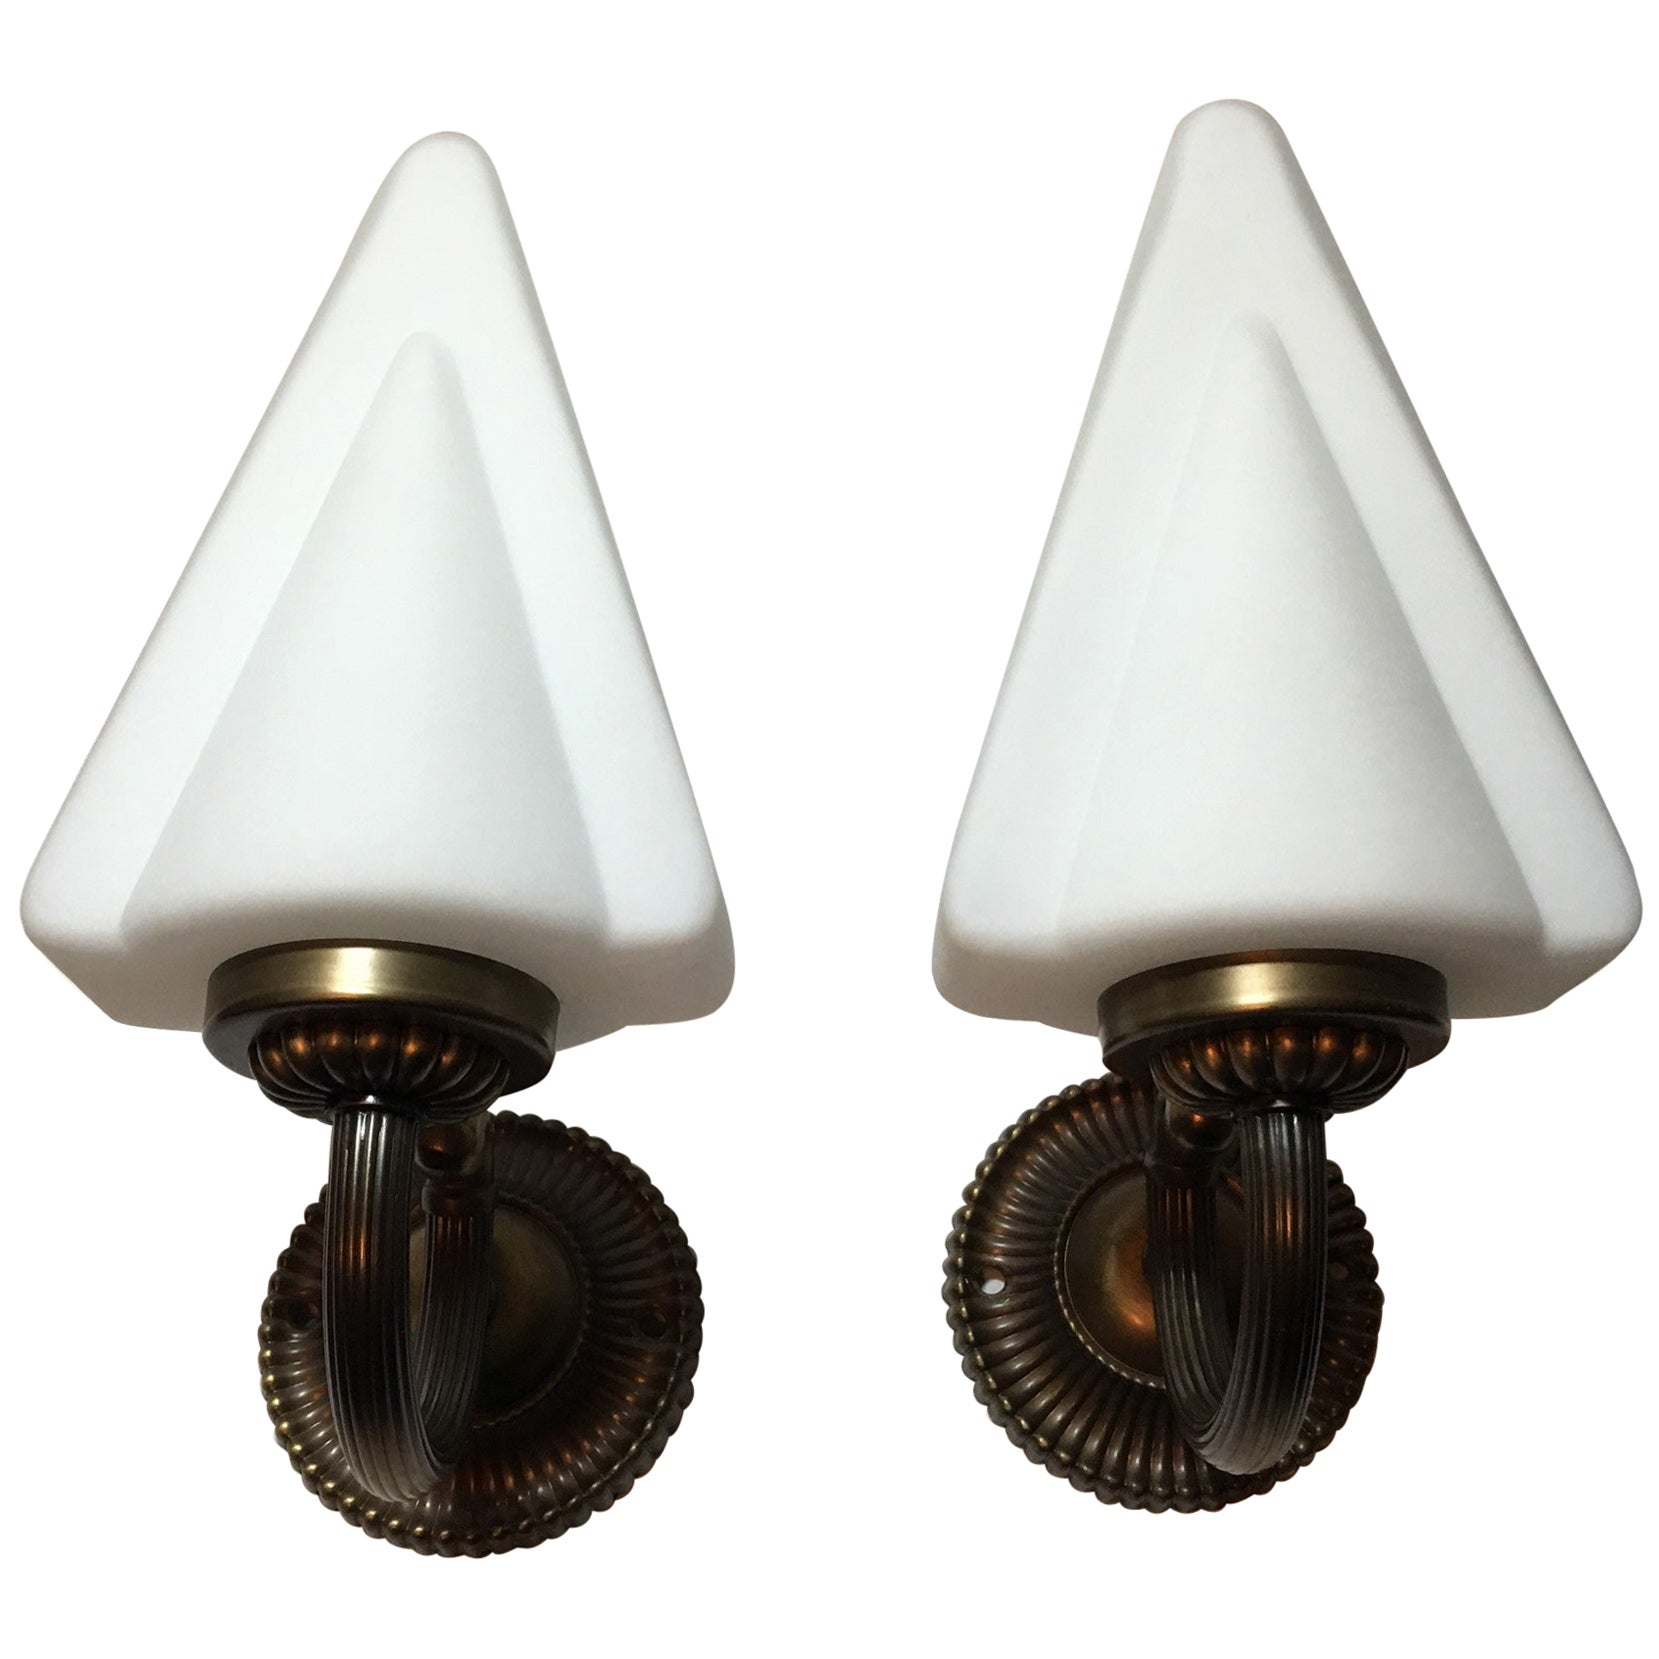 Unique Pair of 1970s French Art Deco Style Brass and Milk Glass Sconces